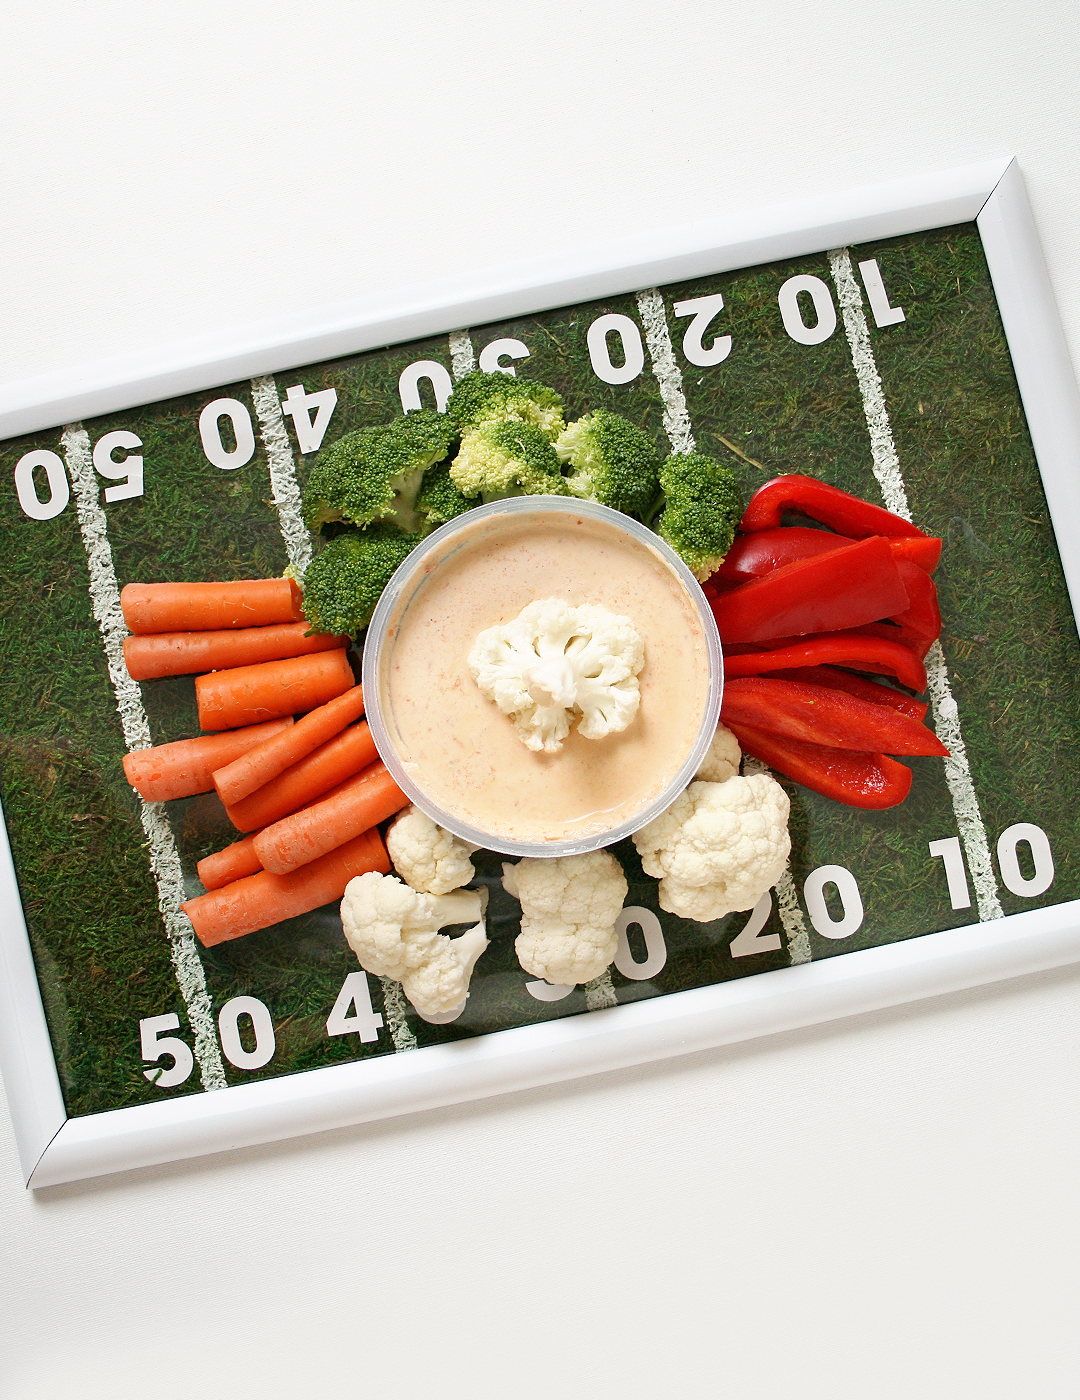 DIY Football Field Tray + Chobani Mezé Dip